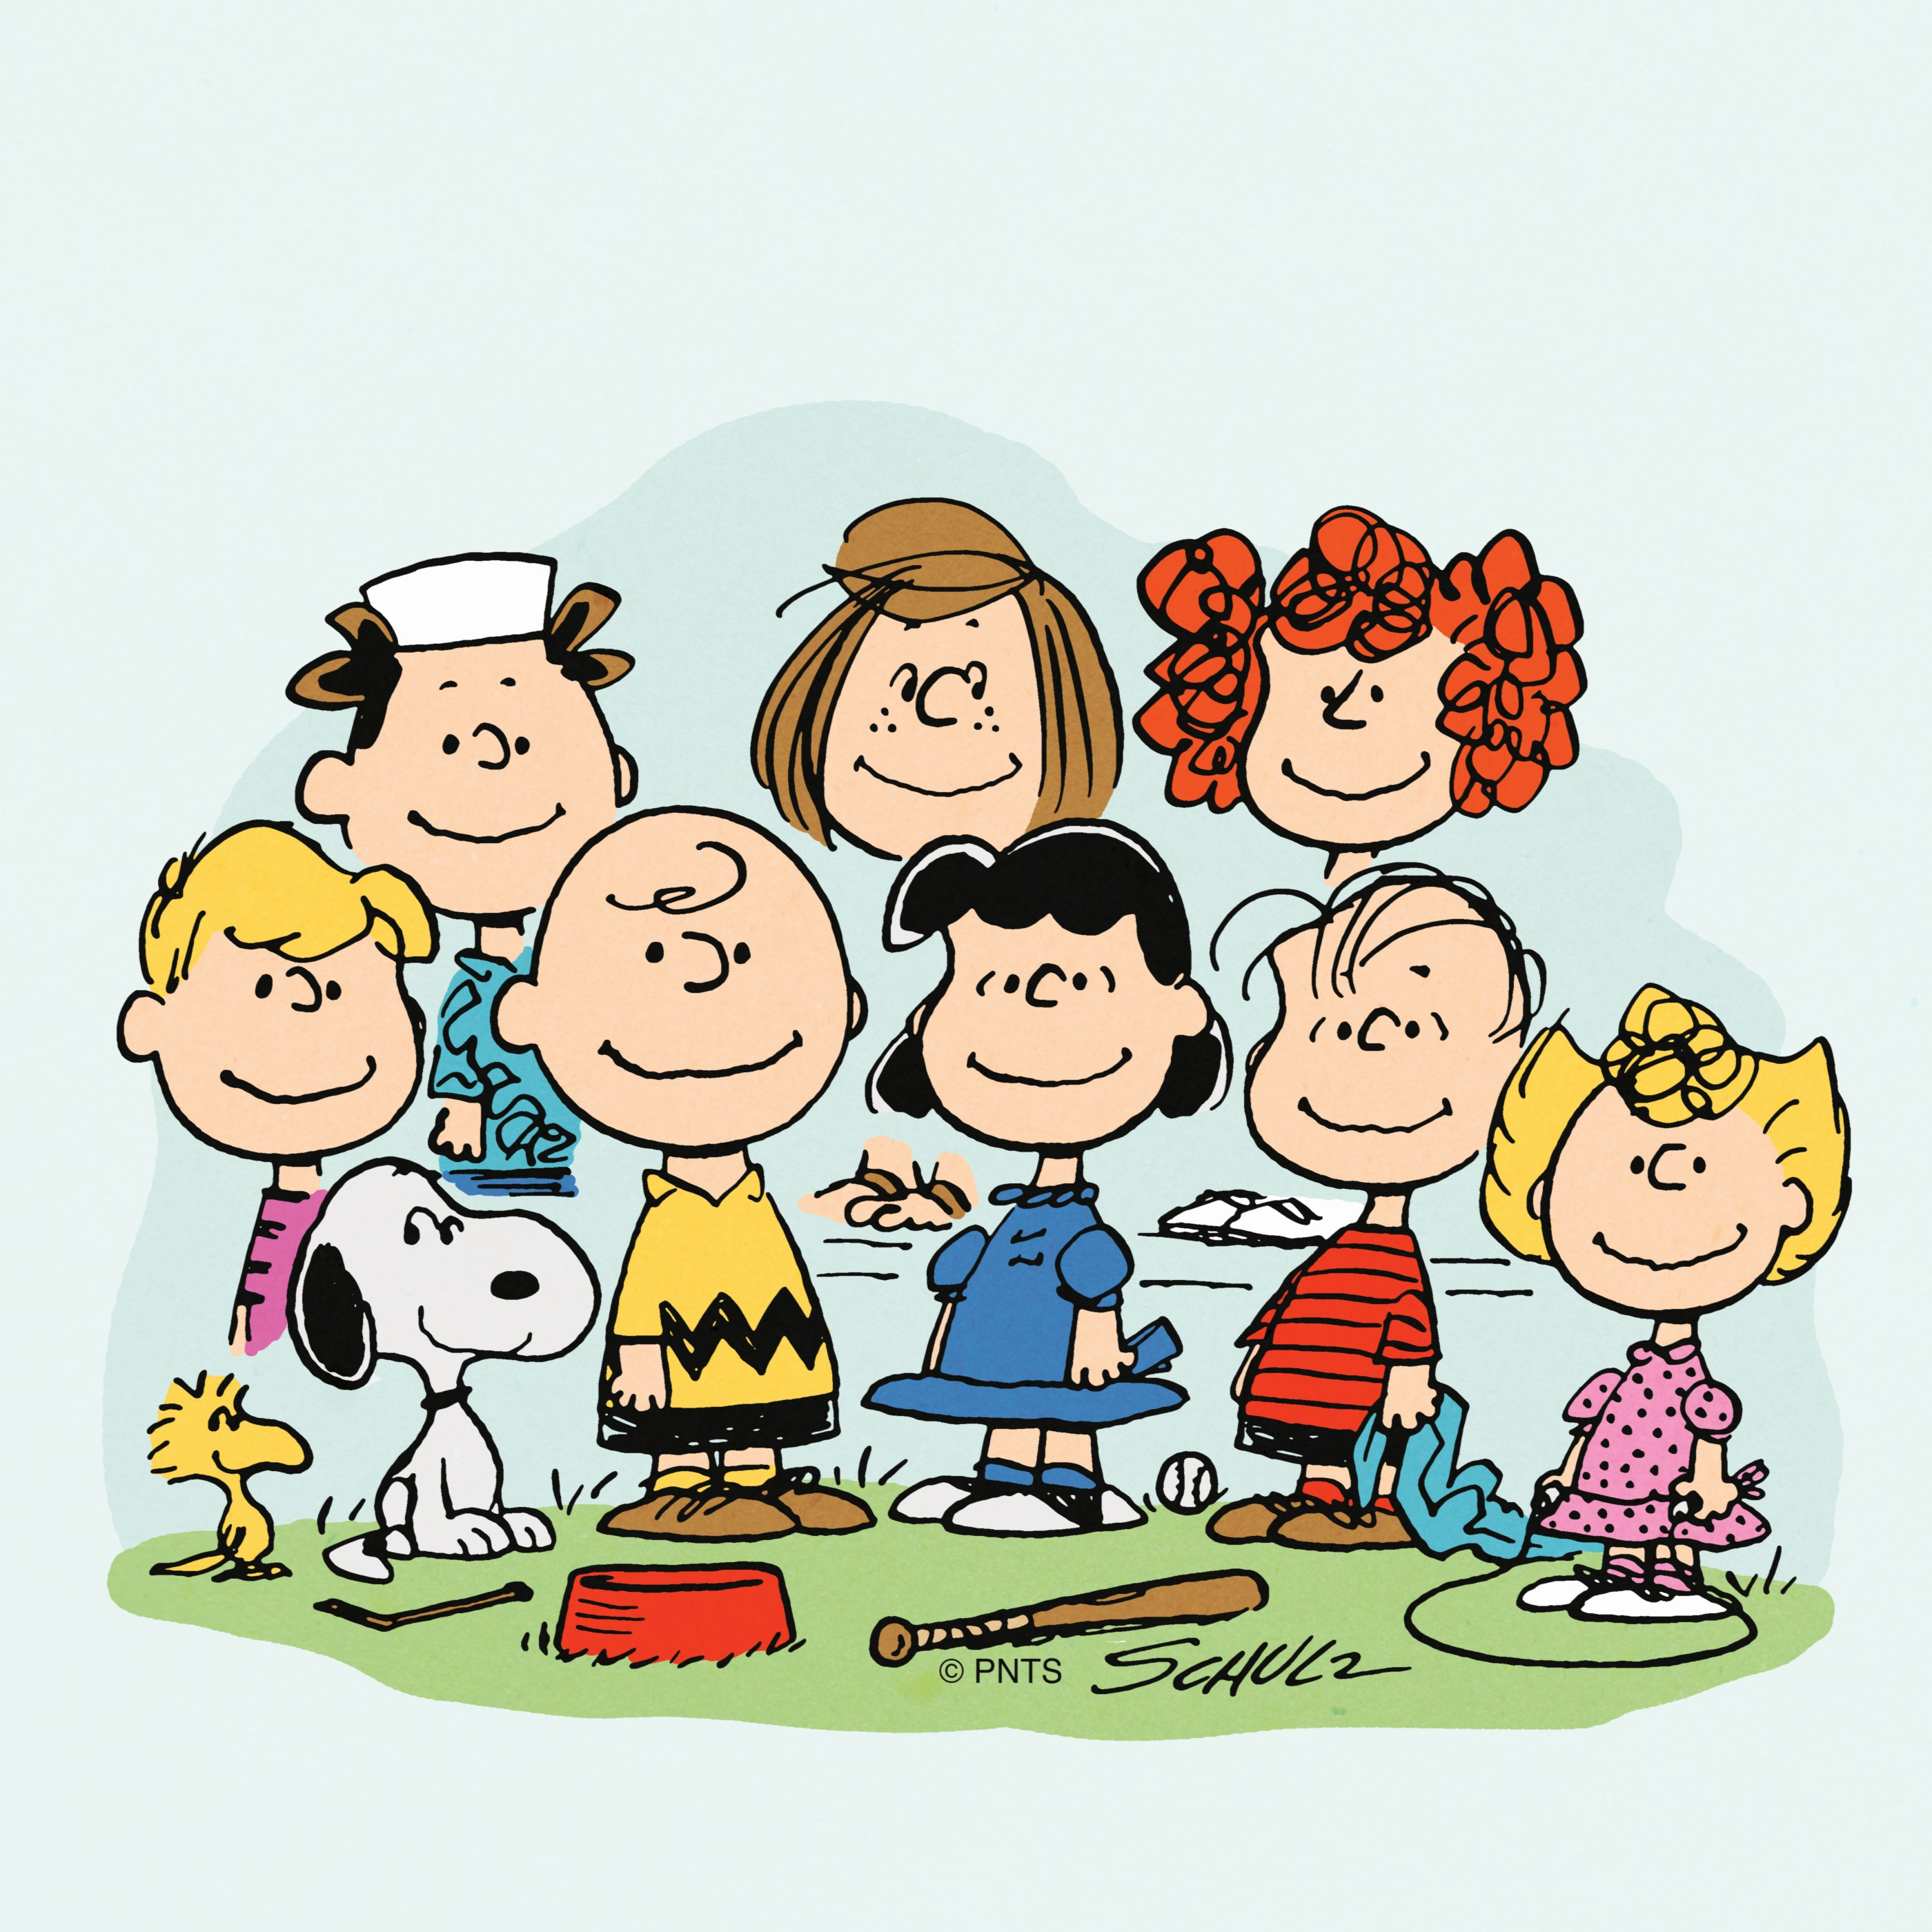 new loans to good grief charlie brown exhibition and a new series of associated events announced